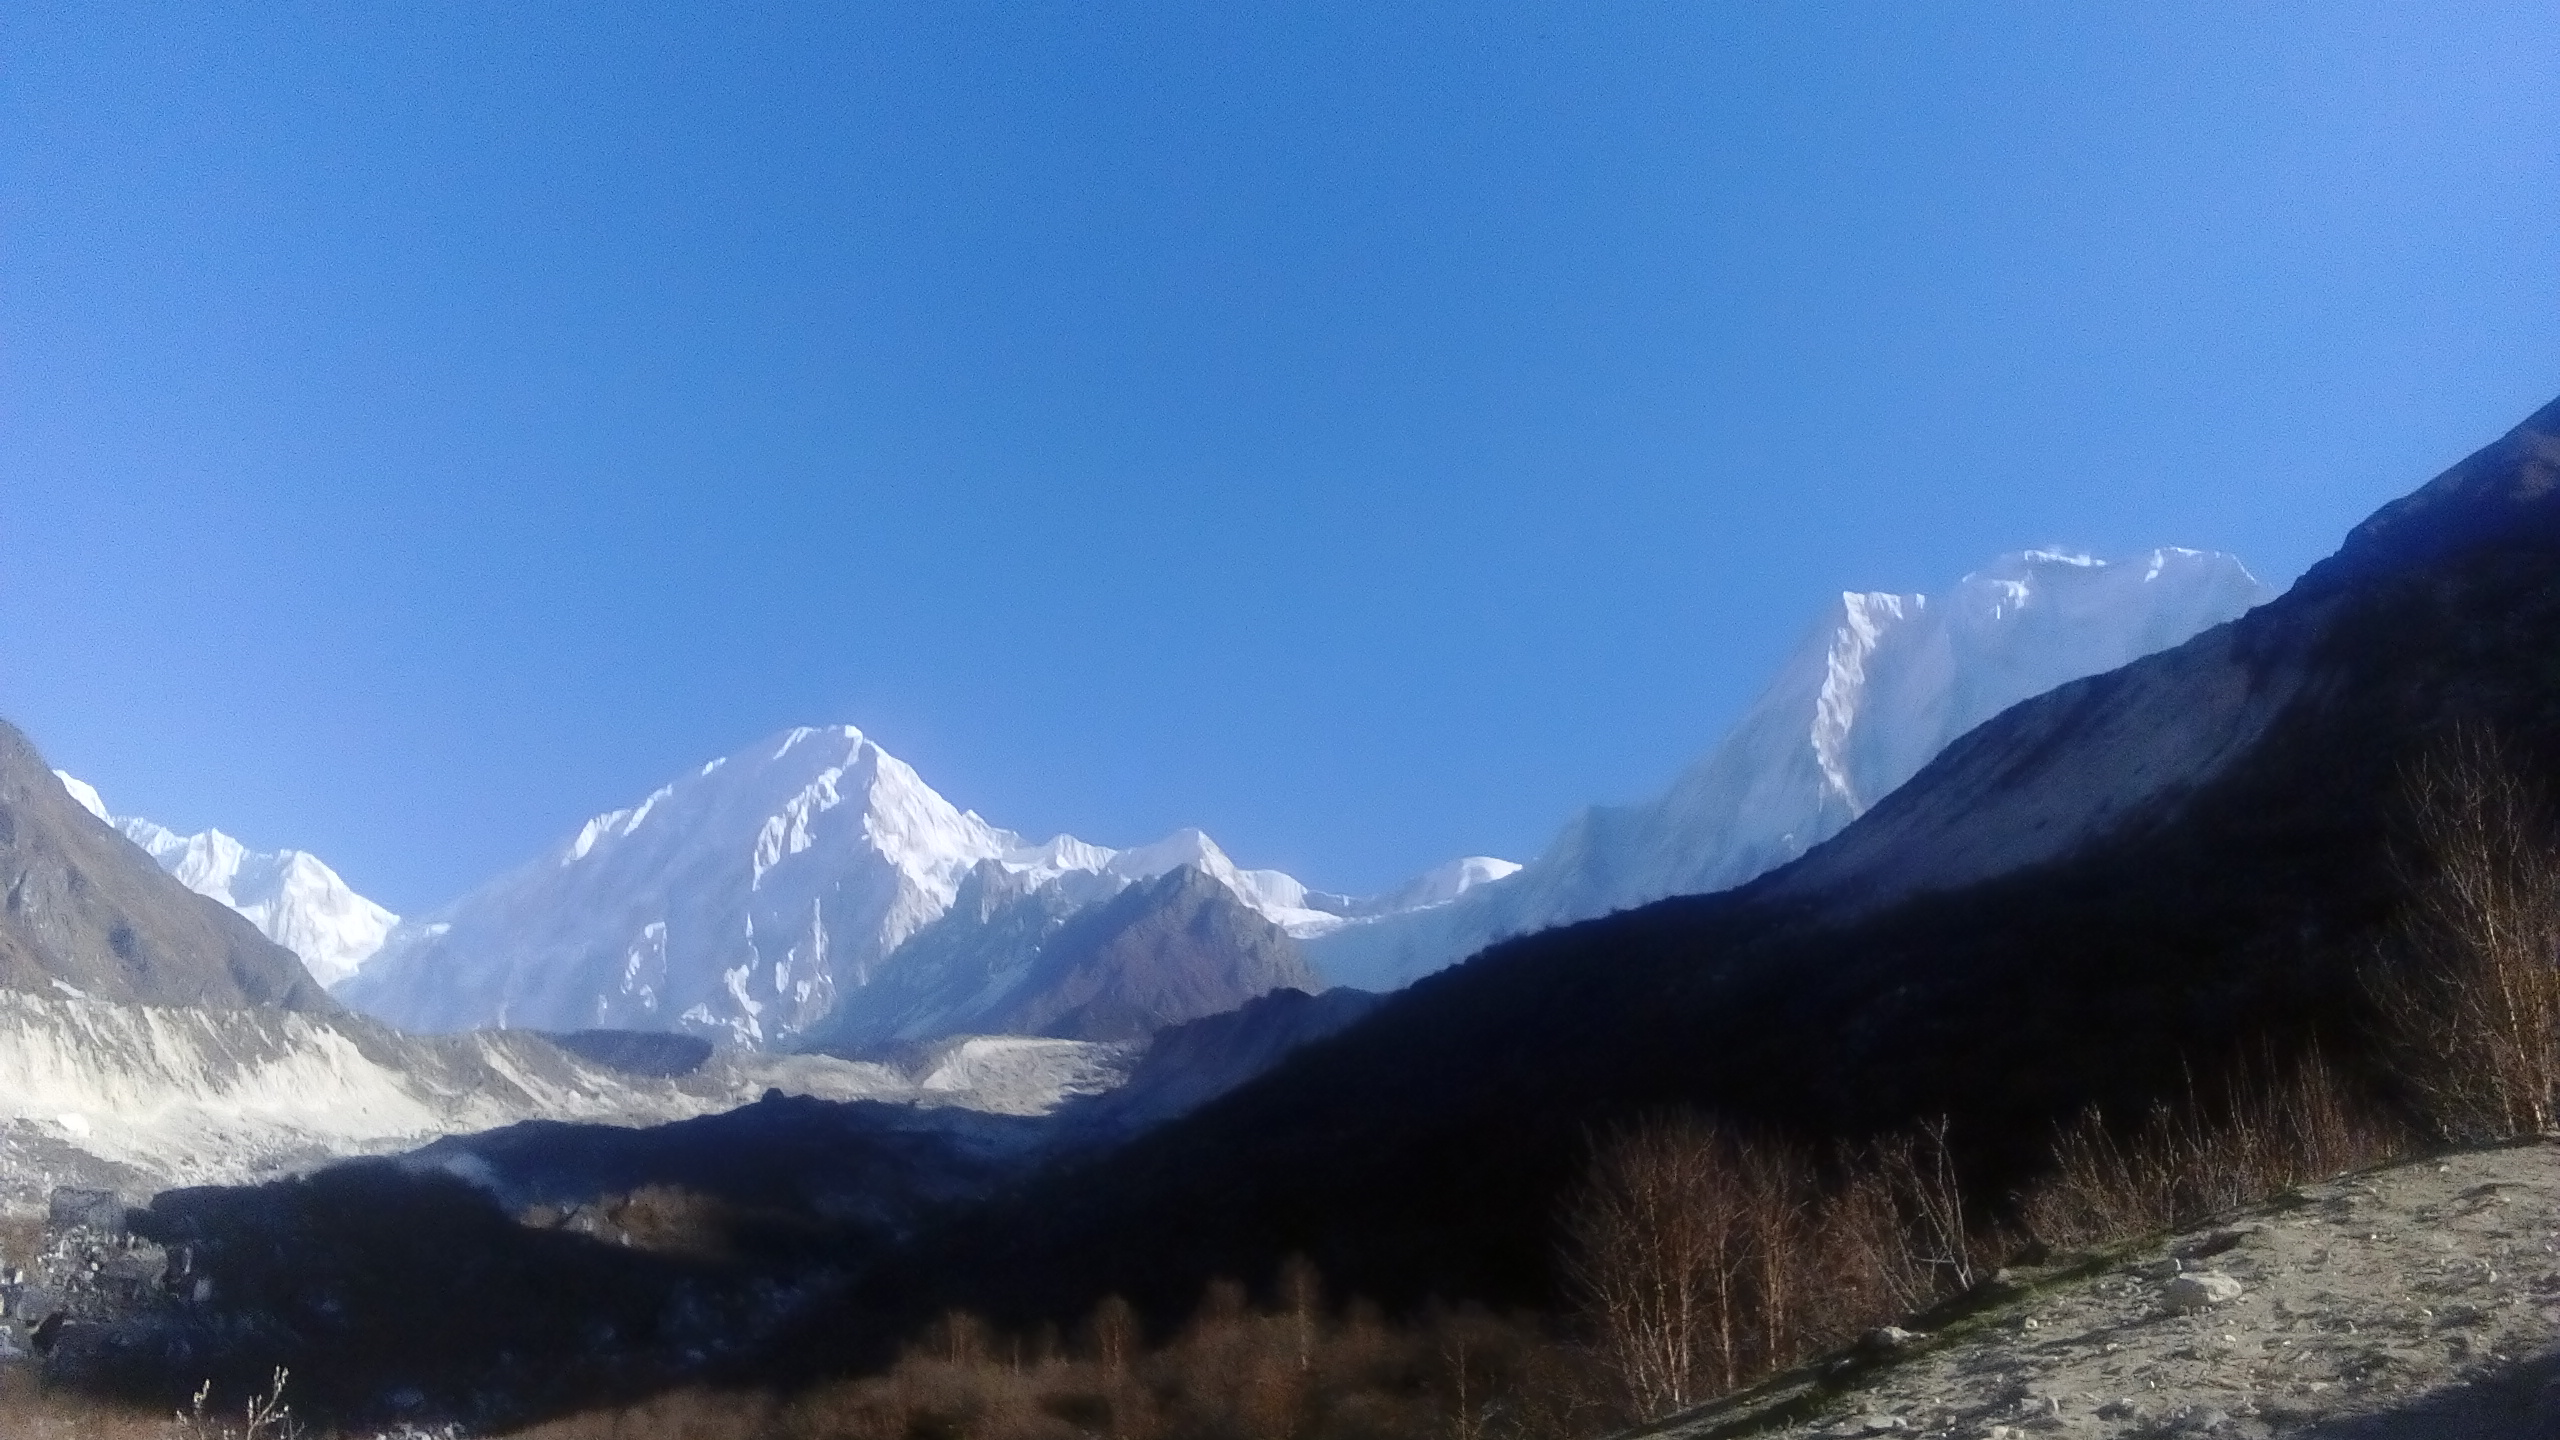 Annapurna Bhimtang Panorama Trekking for 12 days